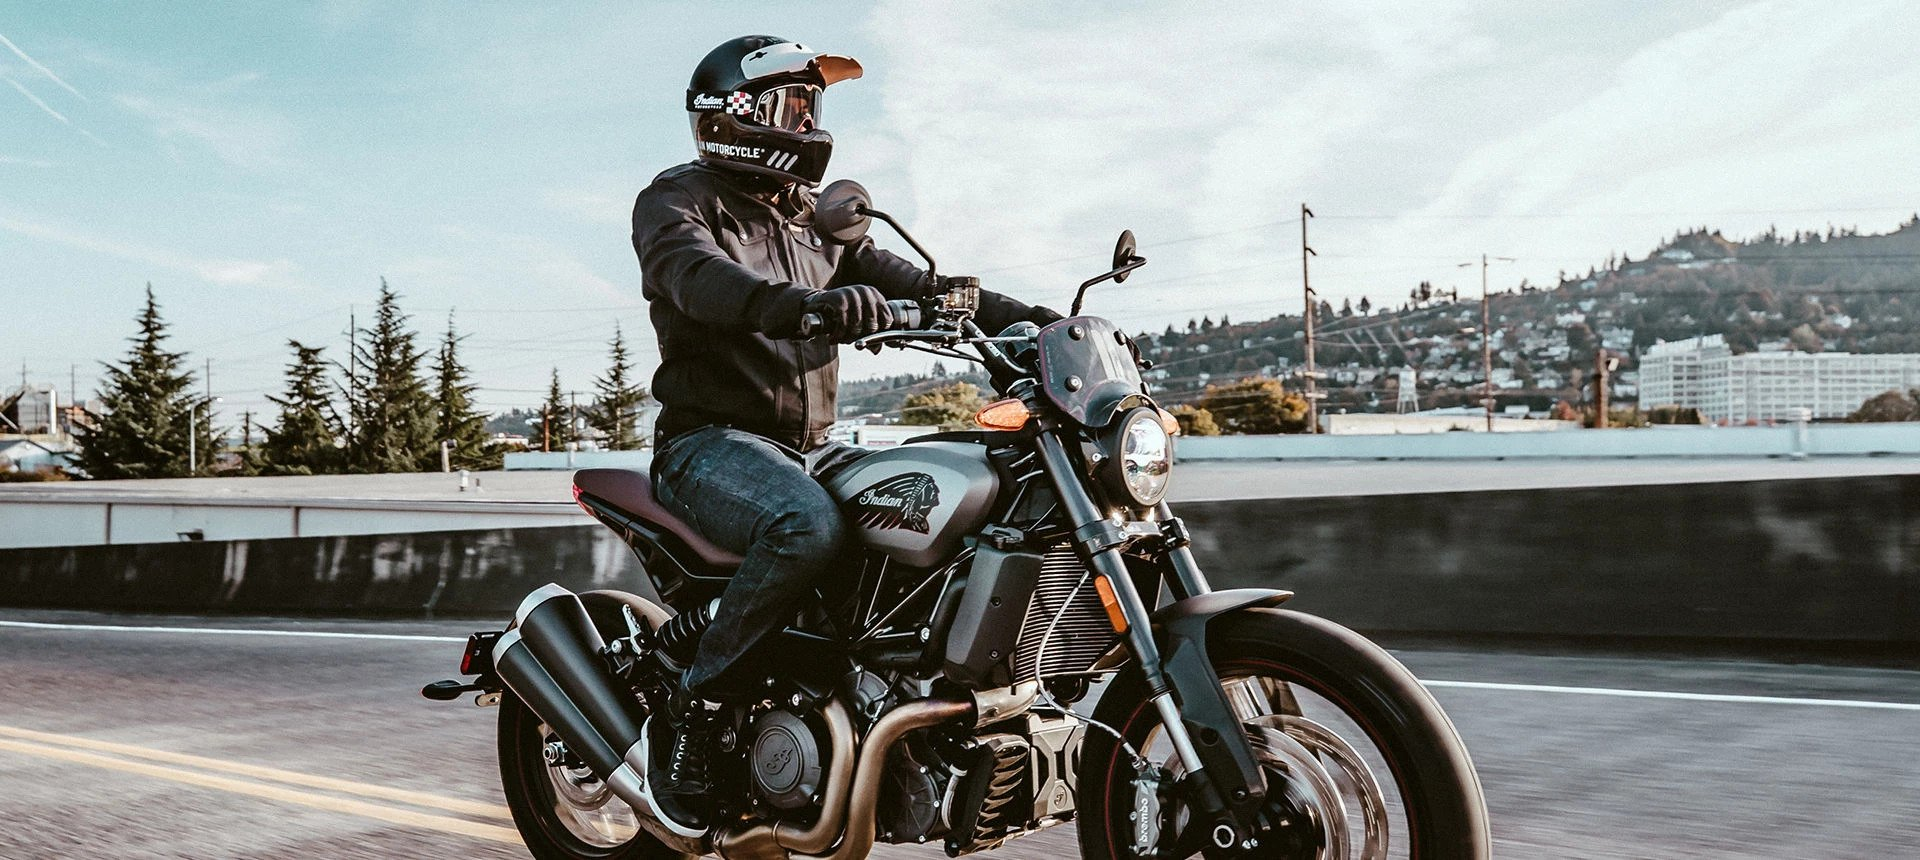 Man Riding the Indian Motorcycle 2021 FTR Rally